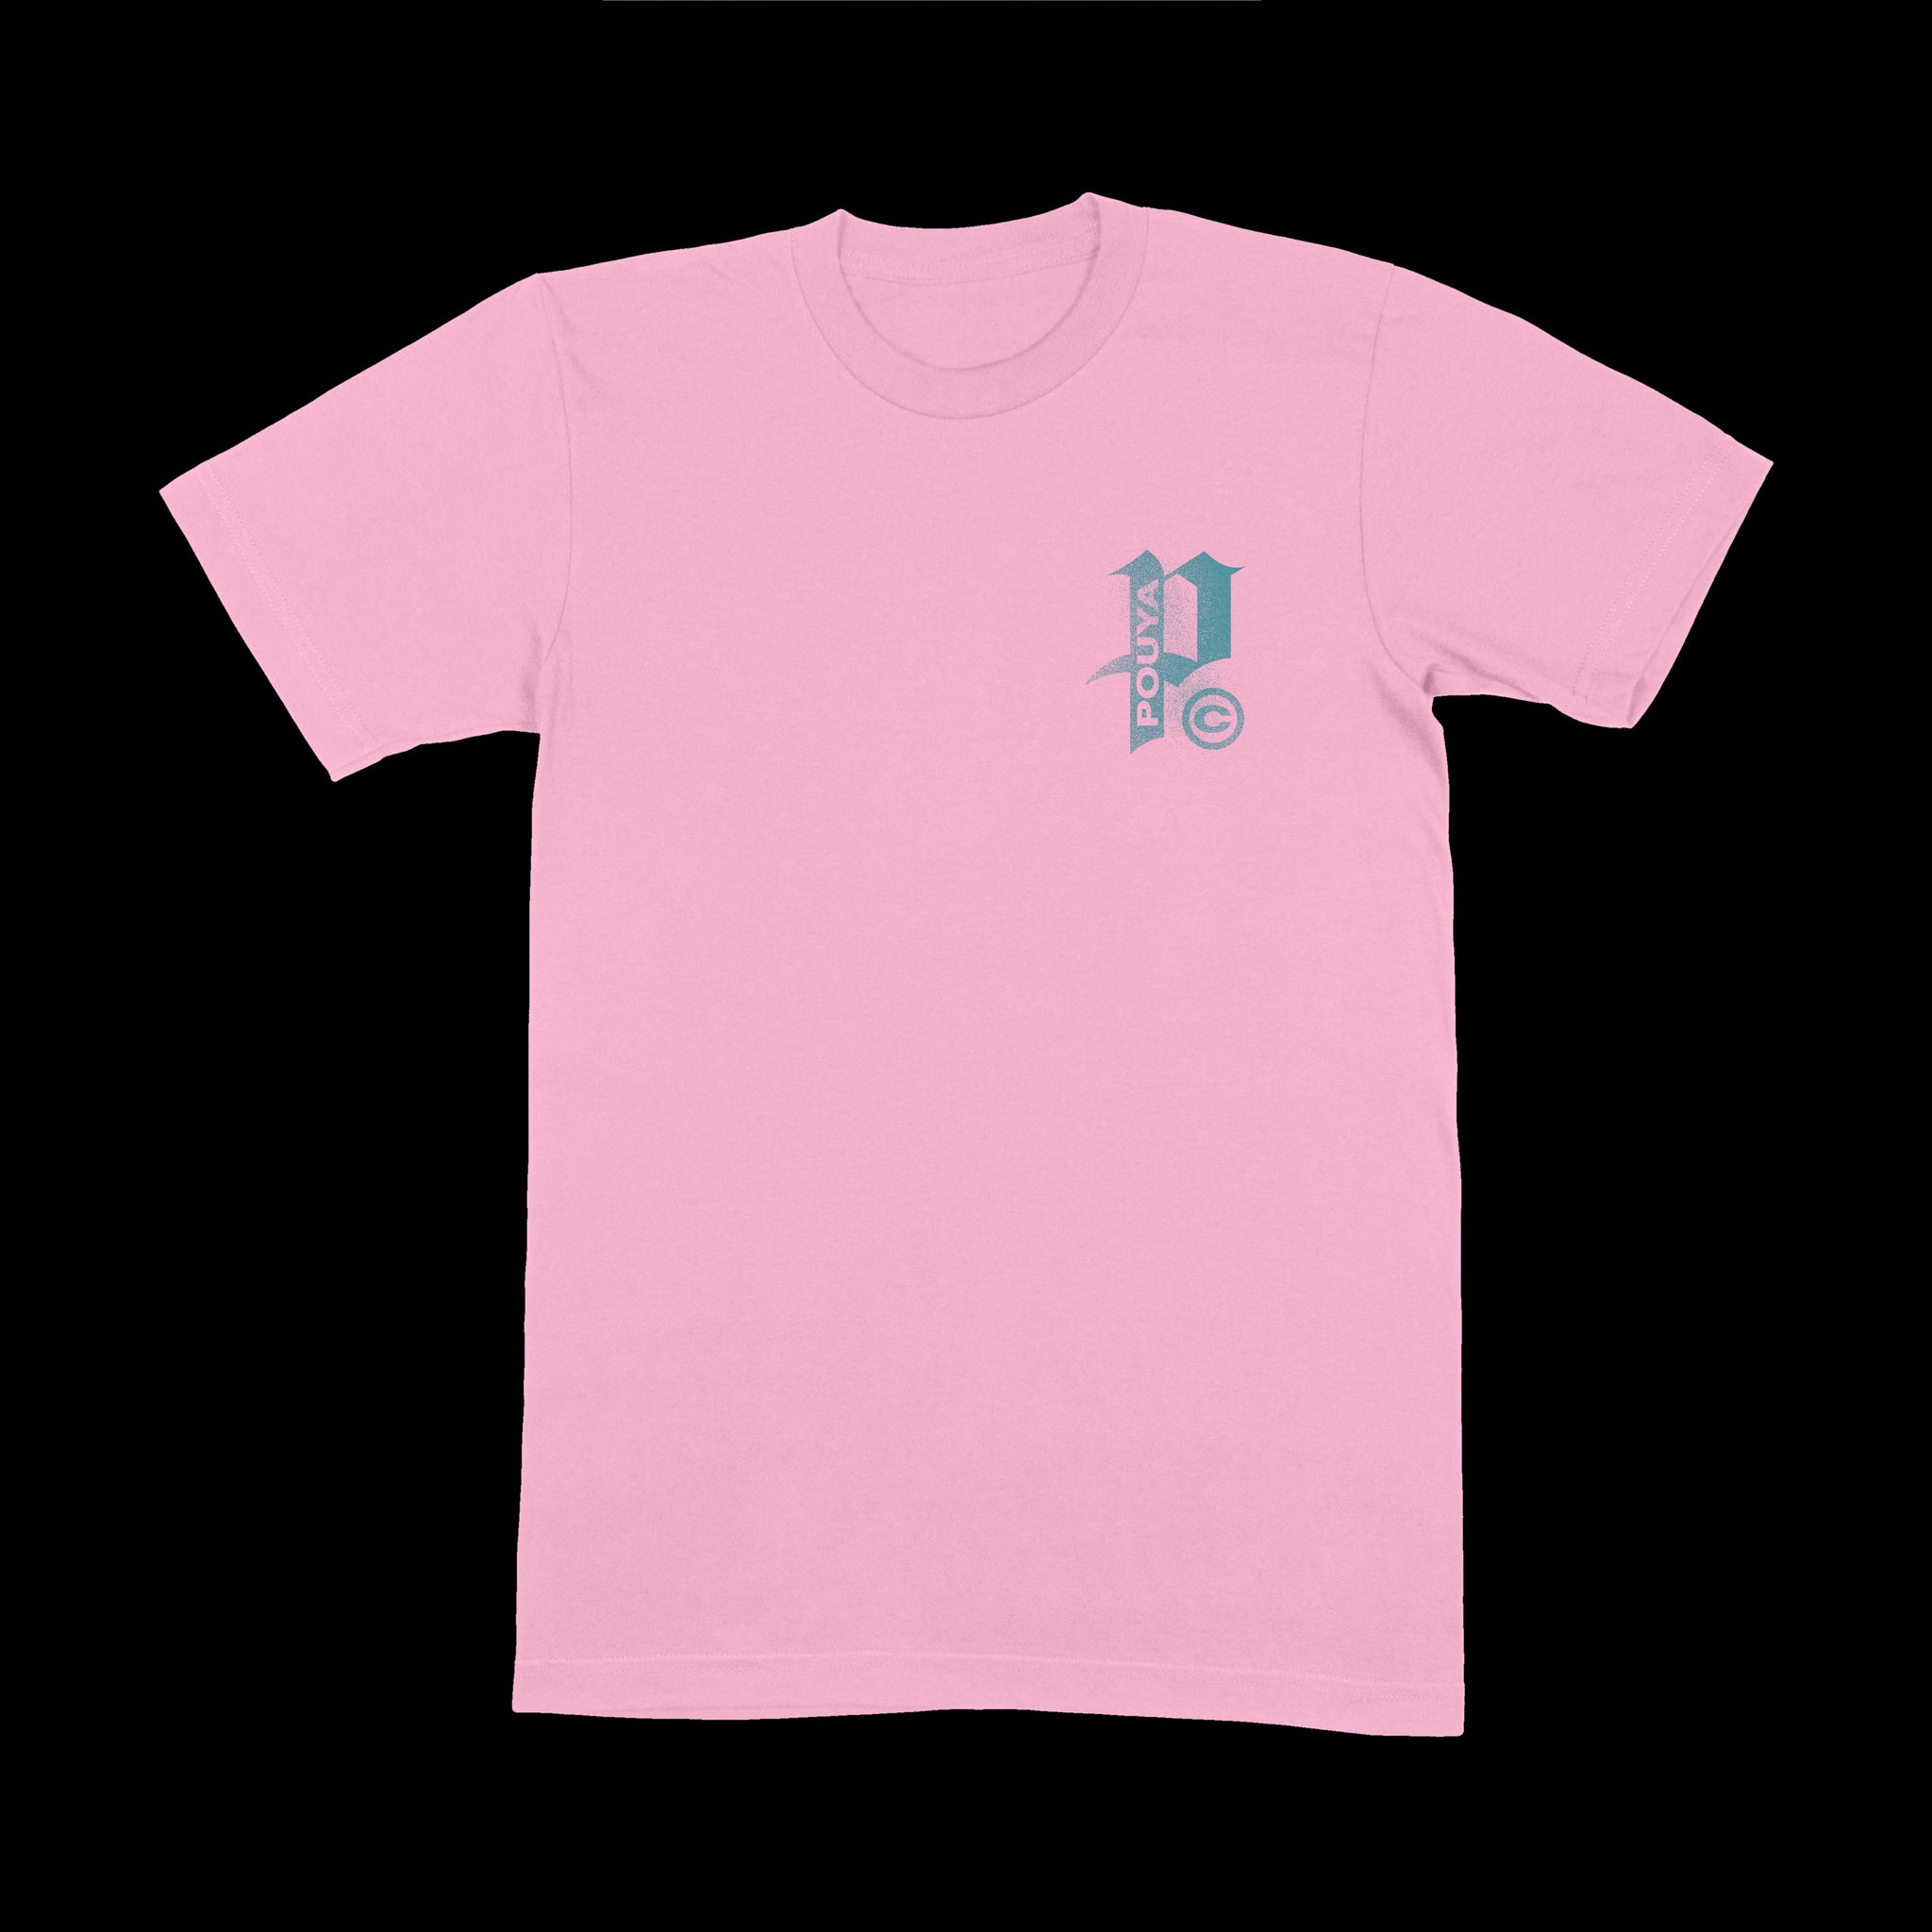 COTTON CANDY TEE - PINK